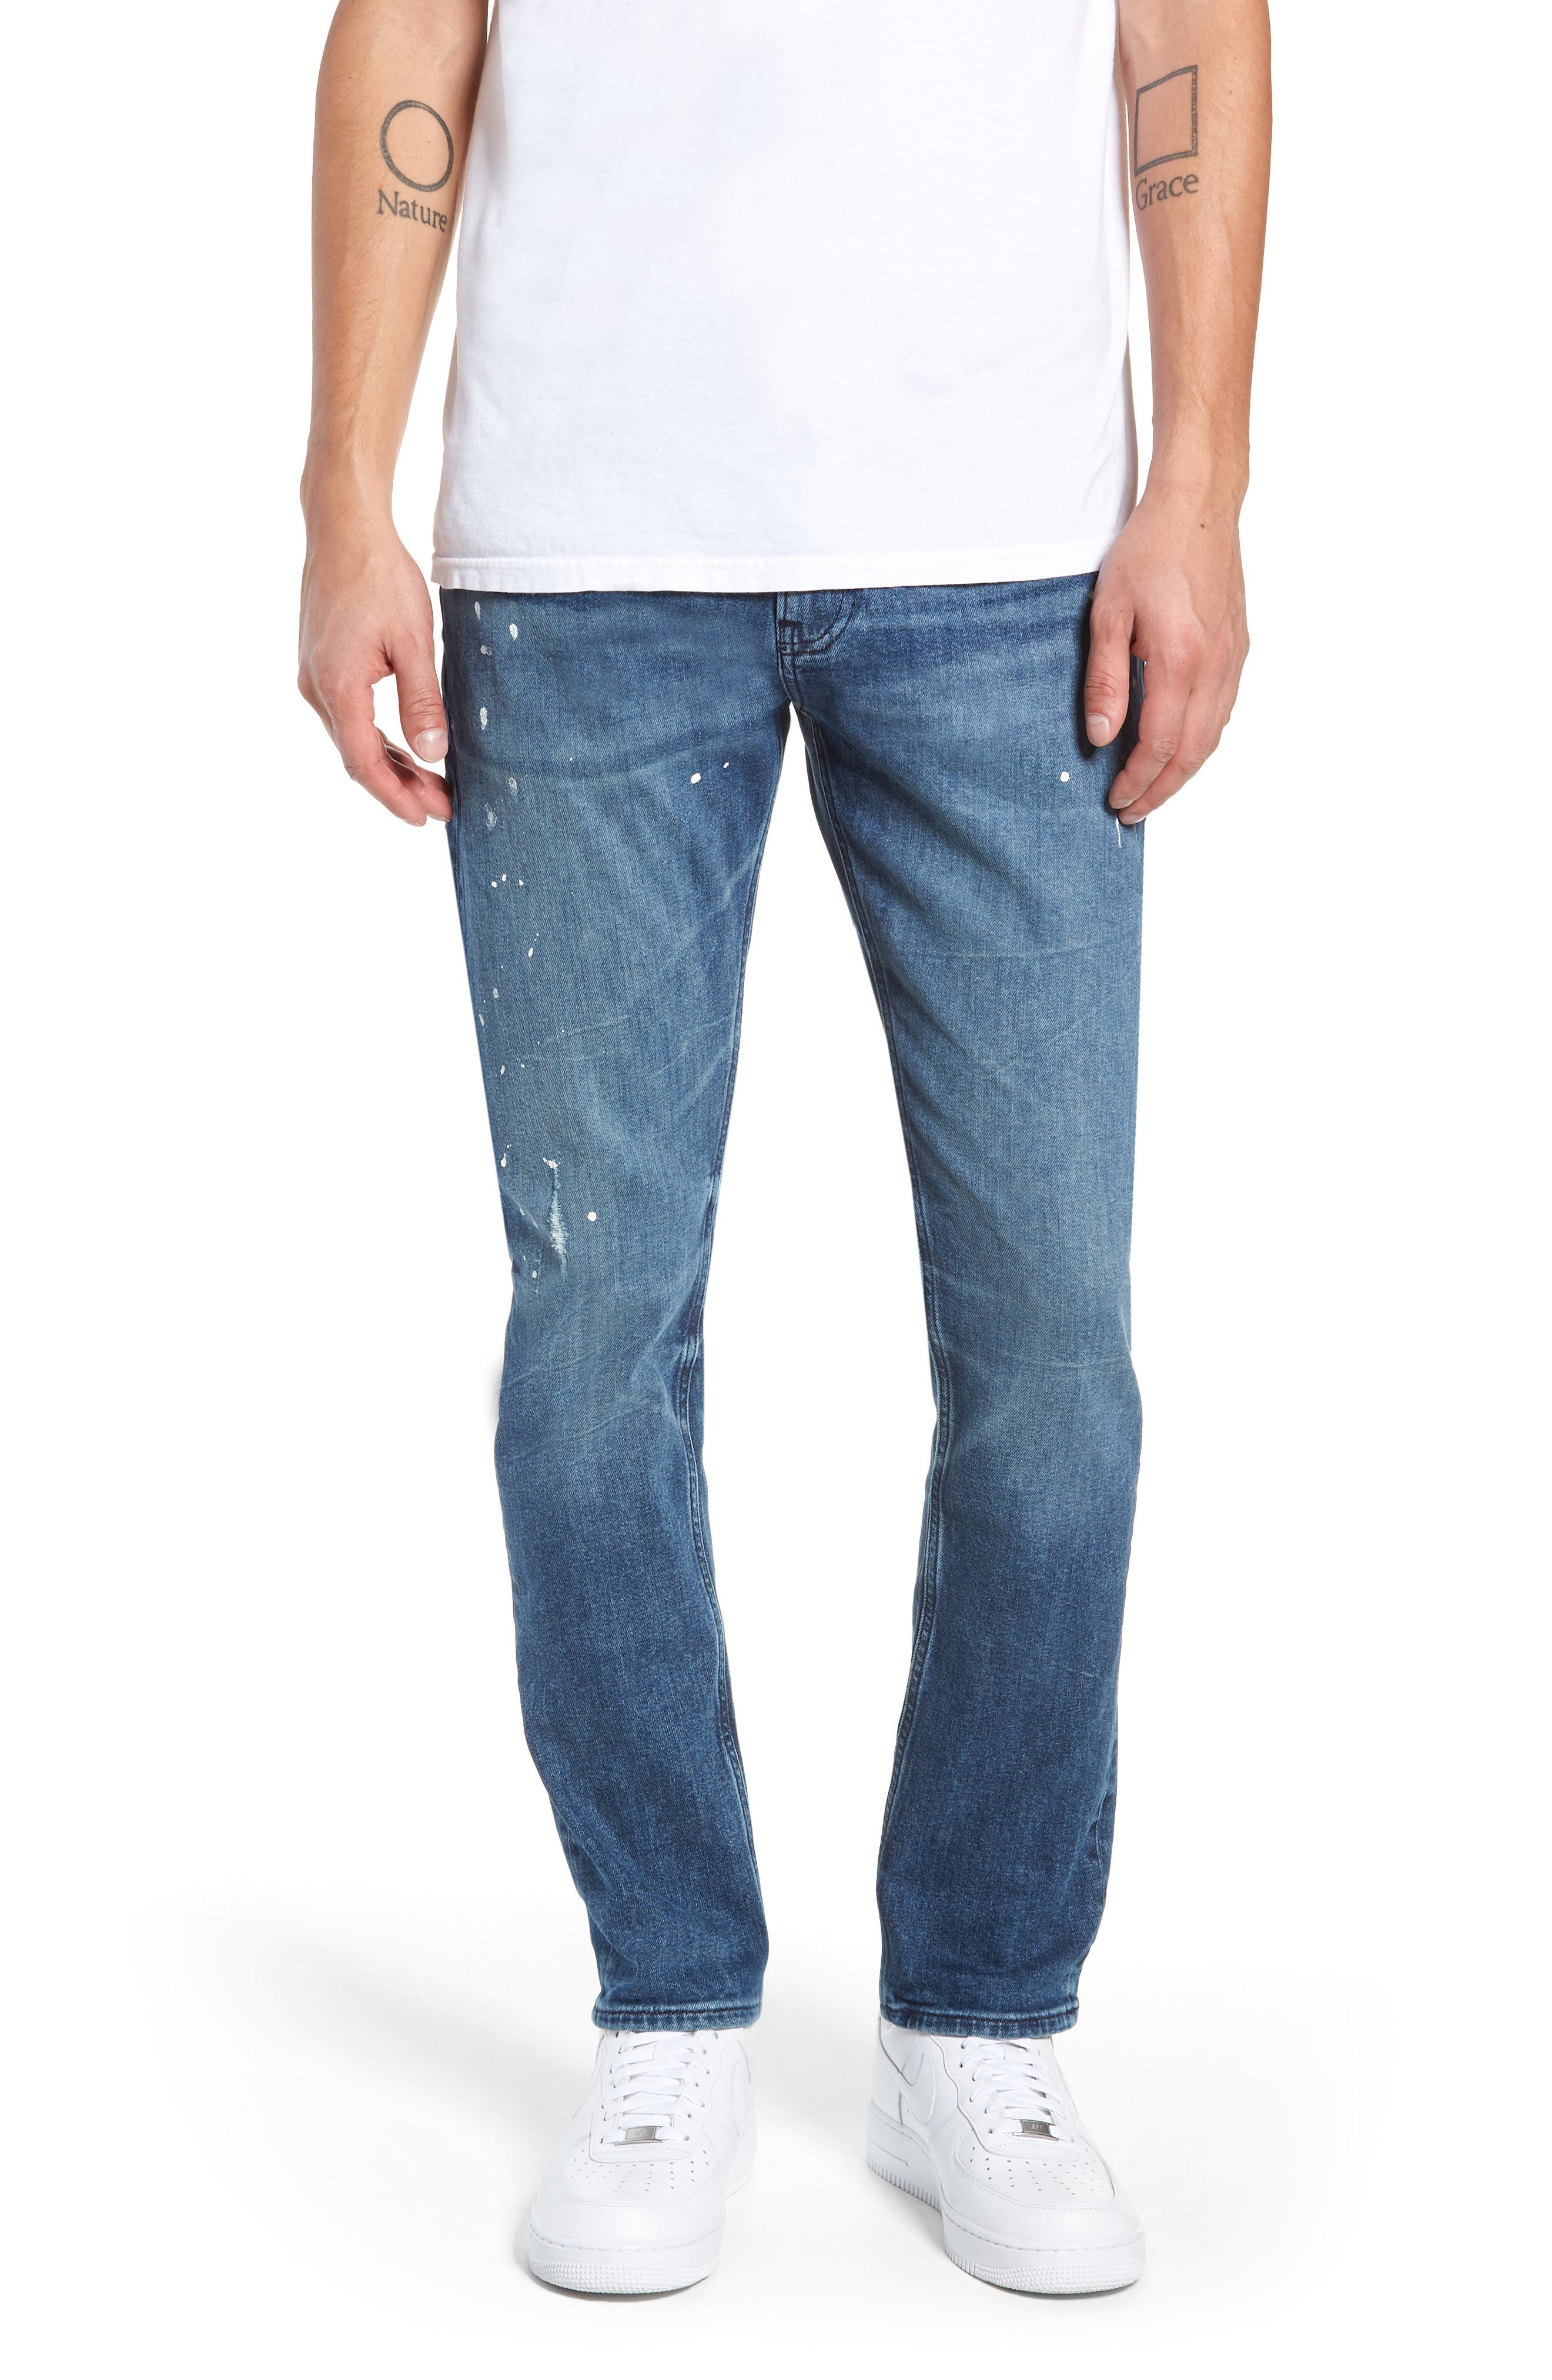 Calvin Klein Slim Fit Jeans,                             Main thumbnail 1, color,                             KINGPIN BLUE